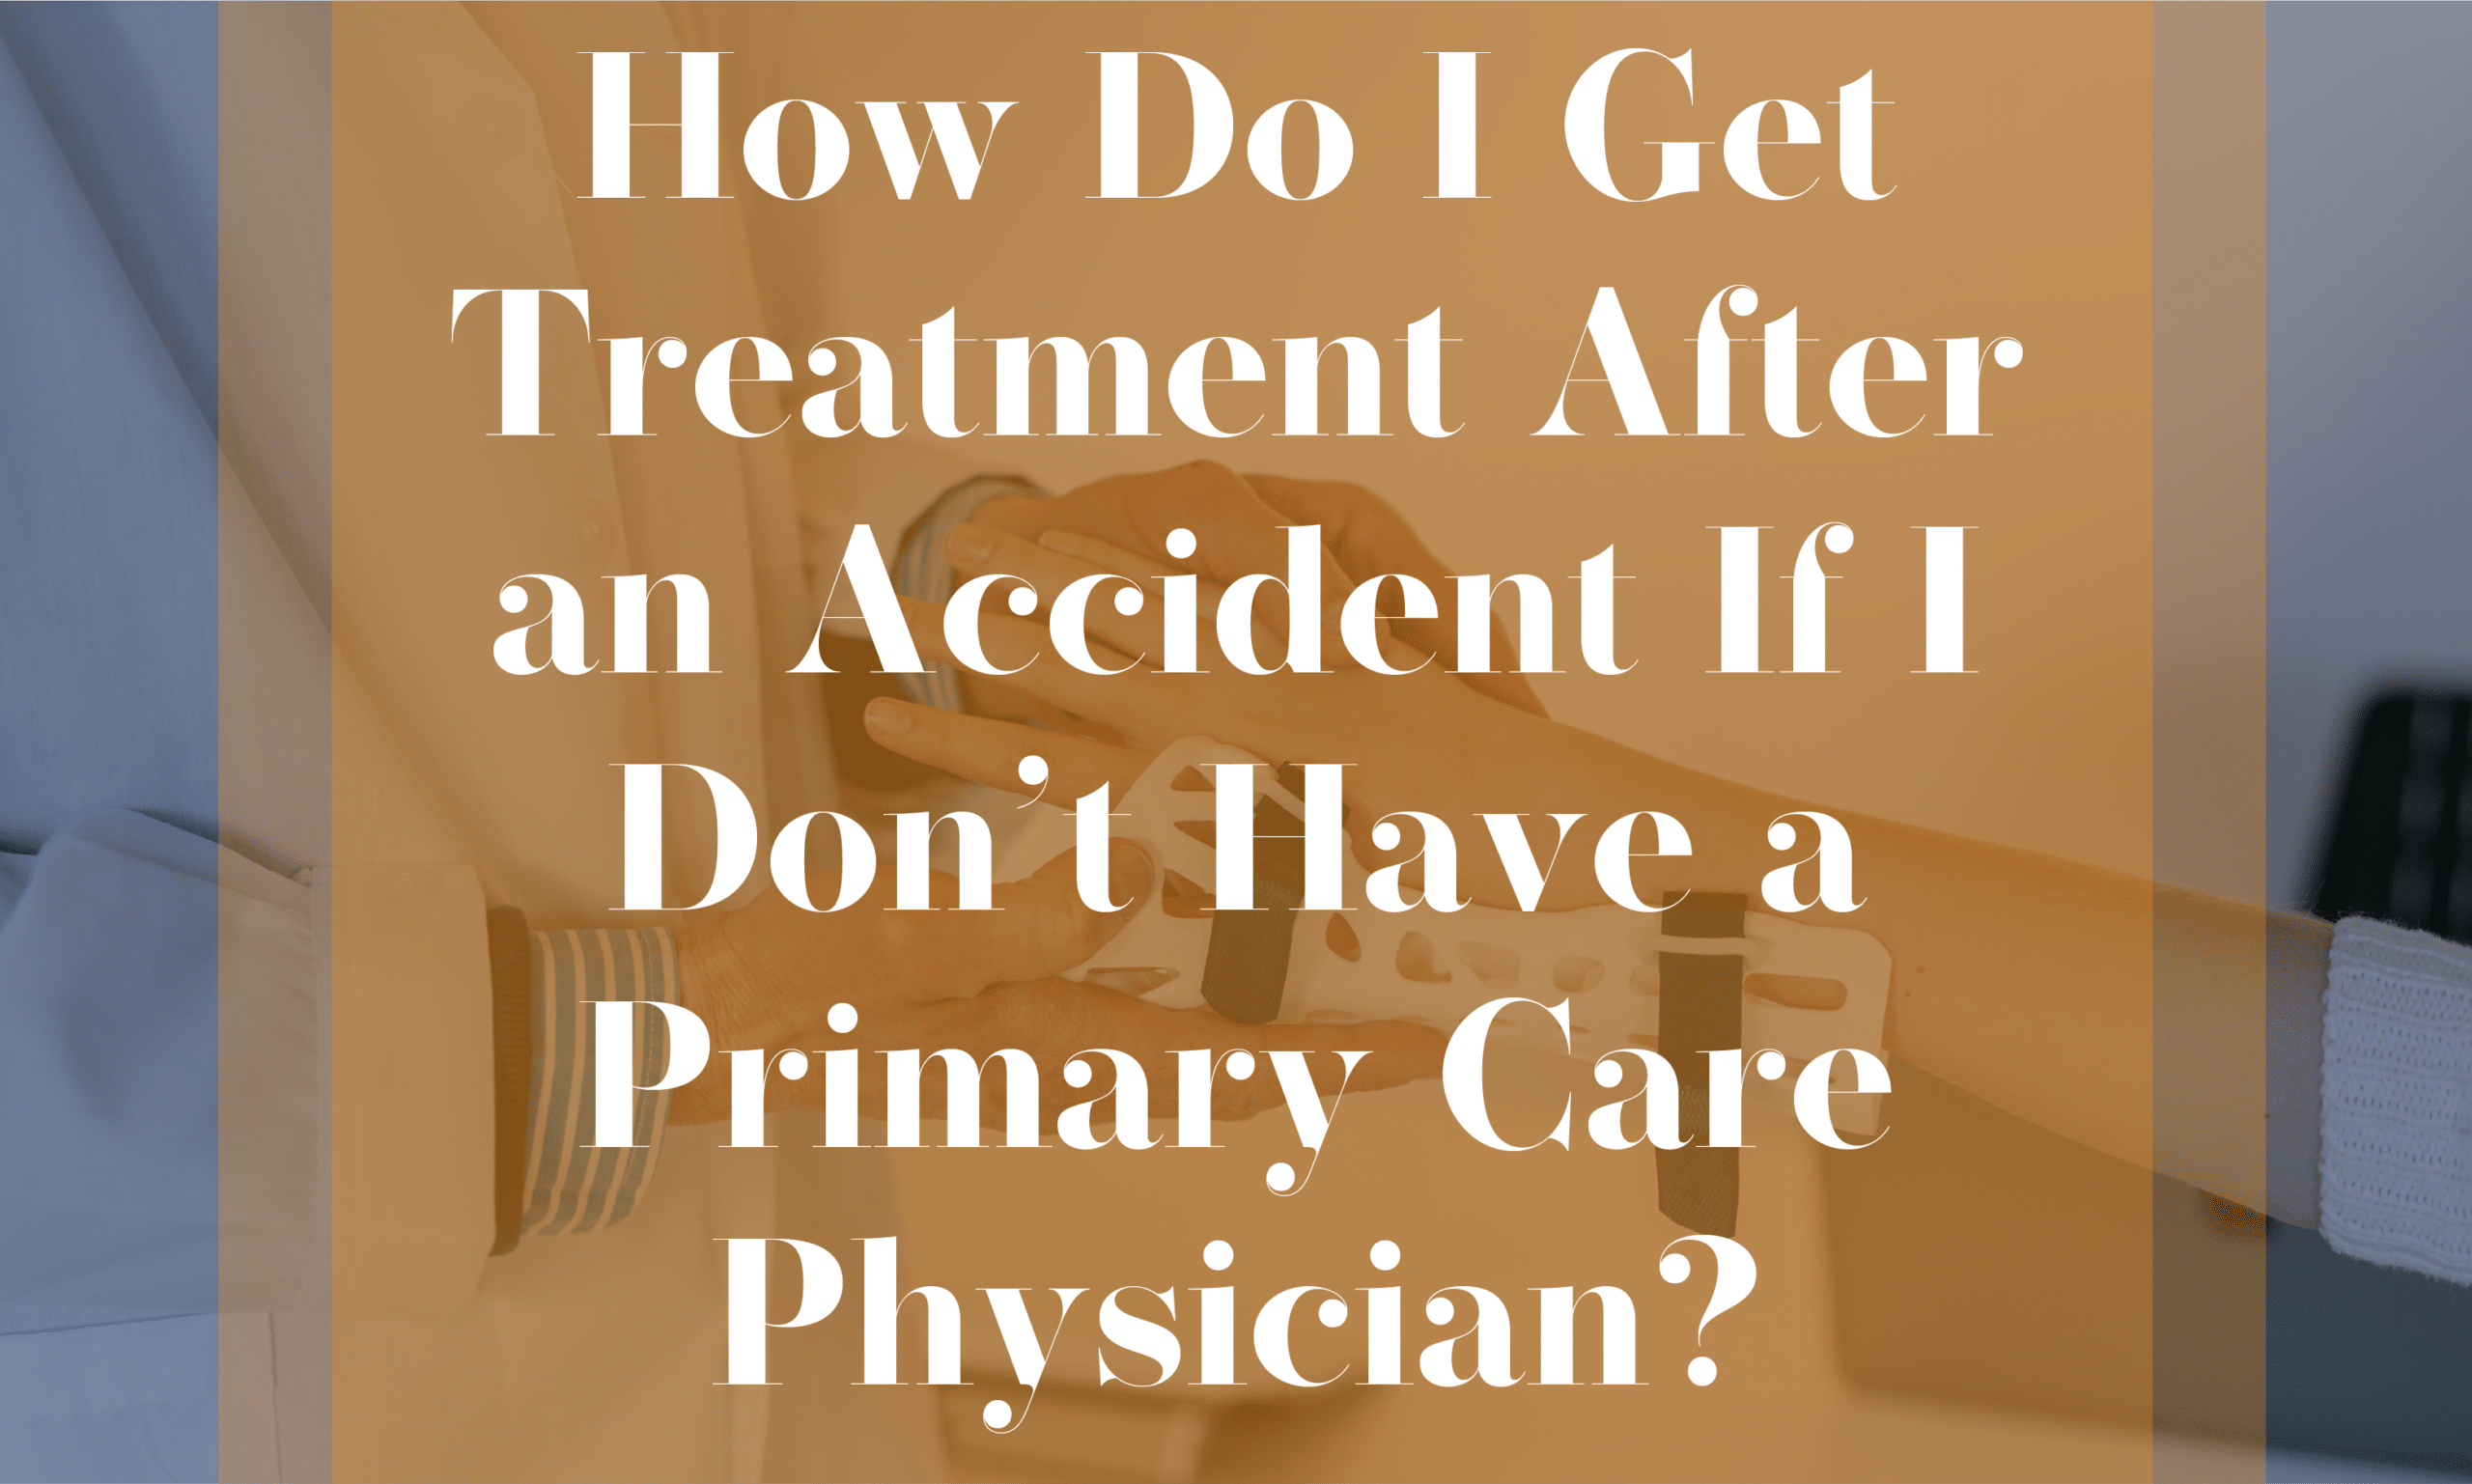 How Do I Get Treatment After an Accident If I Don't Have a Primary Care Physician?